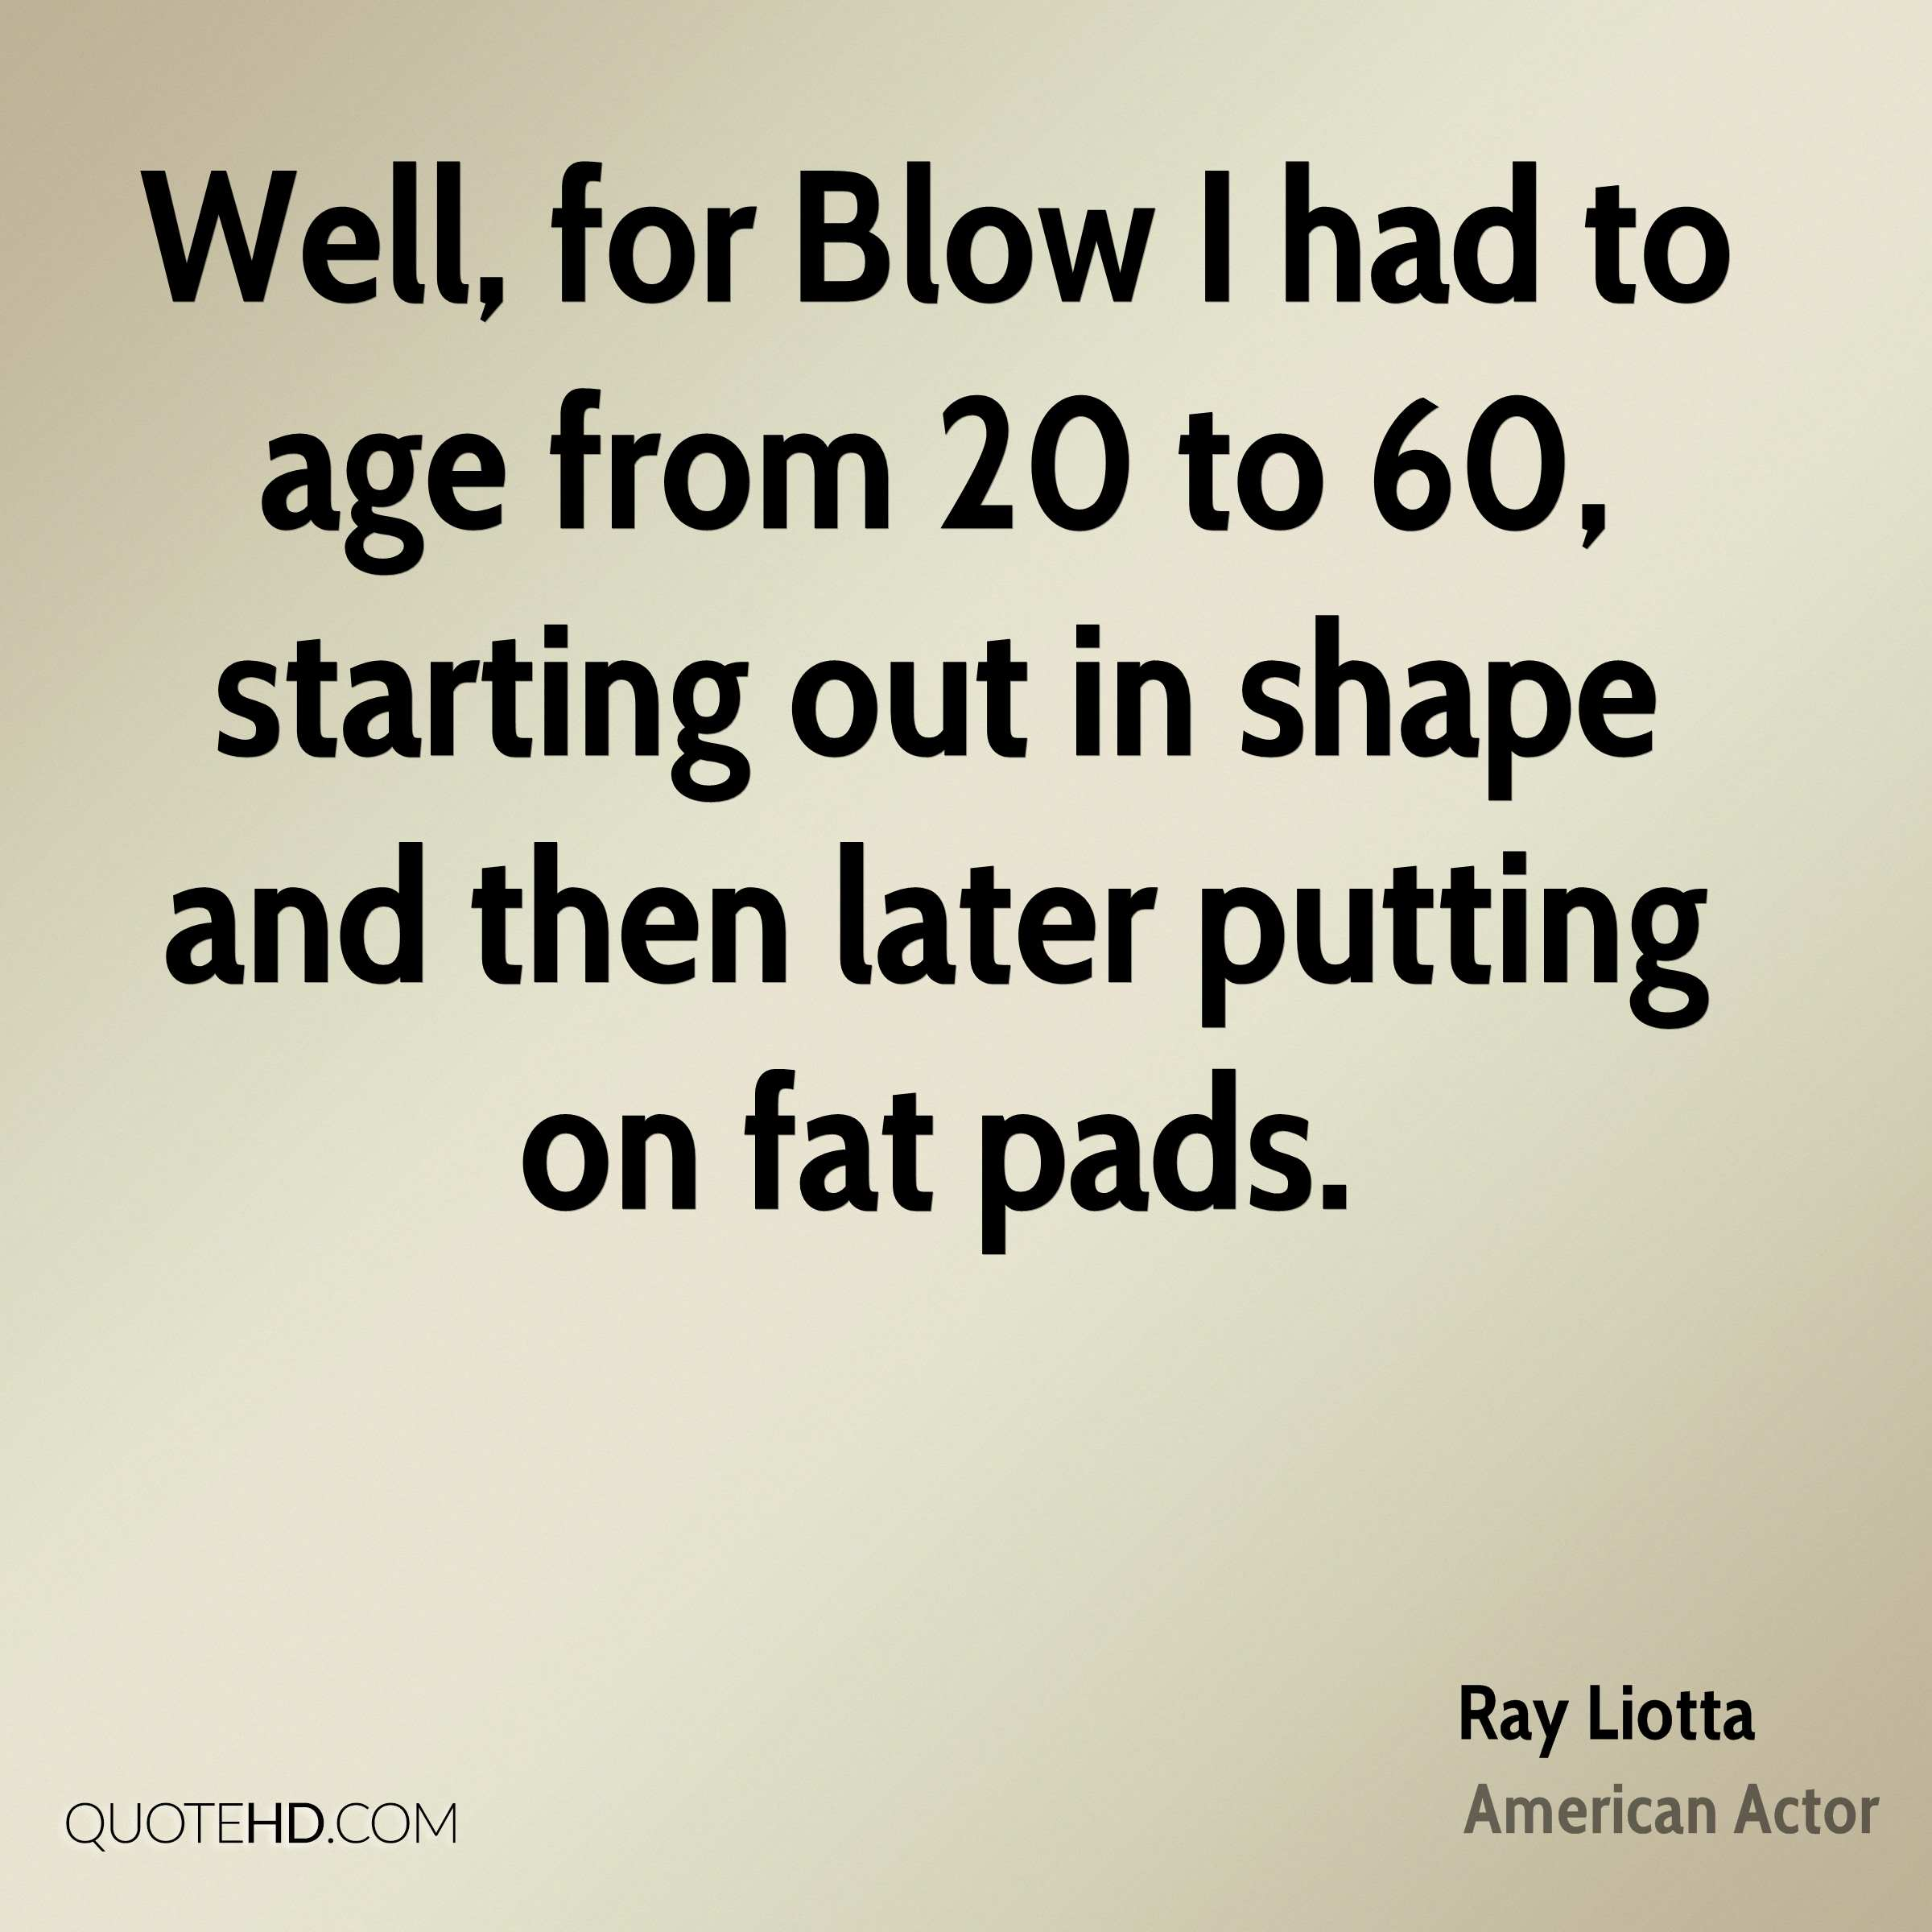 Well, for Blow I had to age from 20 to 60, starting out in shape and then later putting on fat pads.